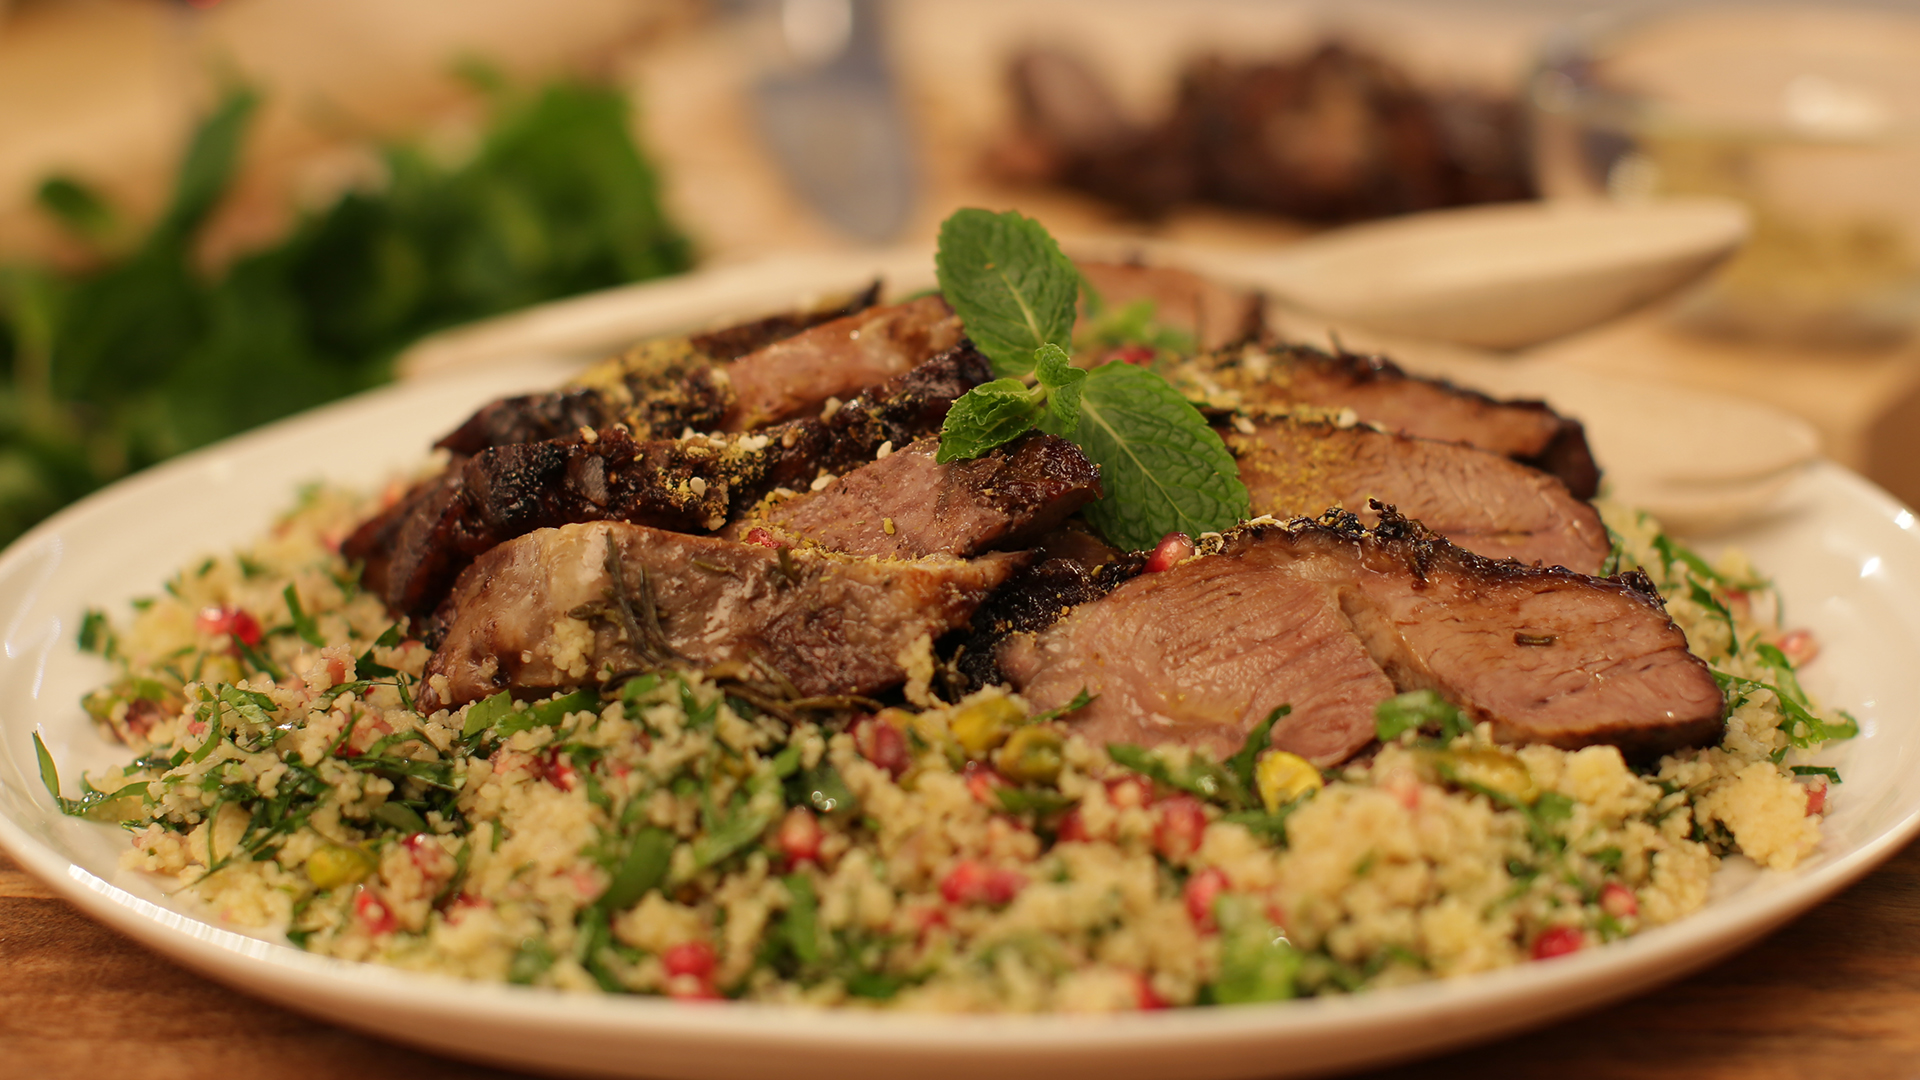 slow cooked Persian lamb roast with couscous salad